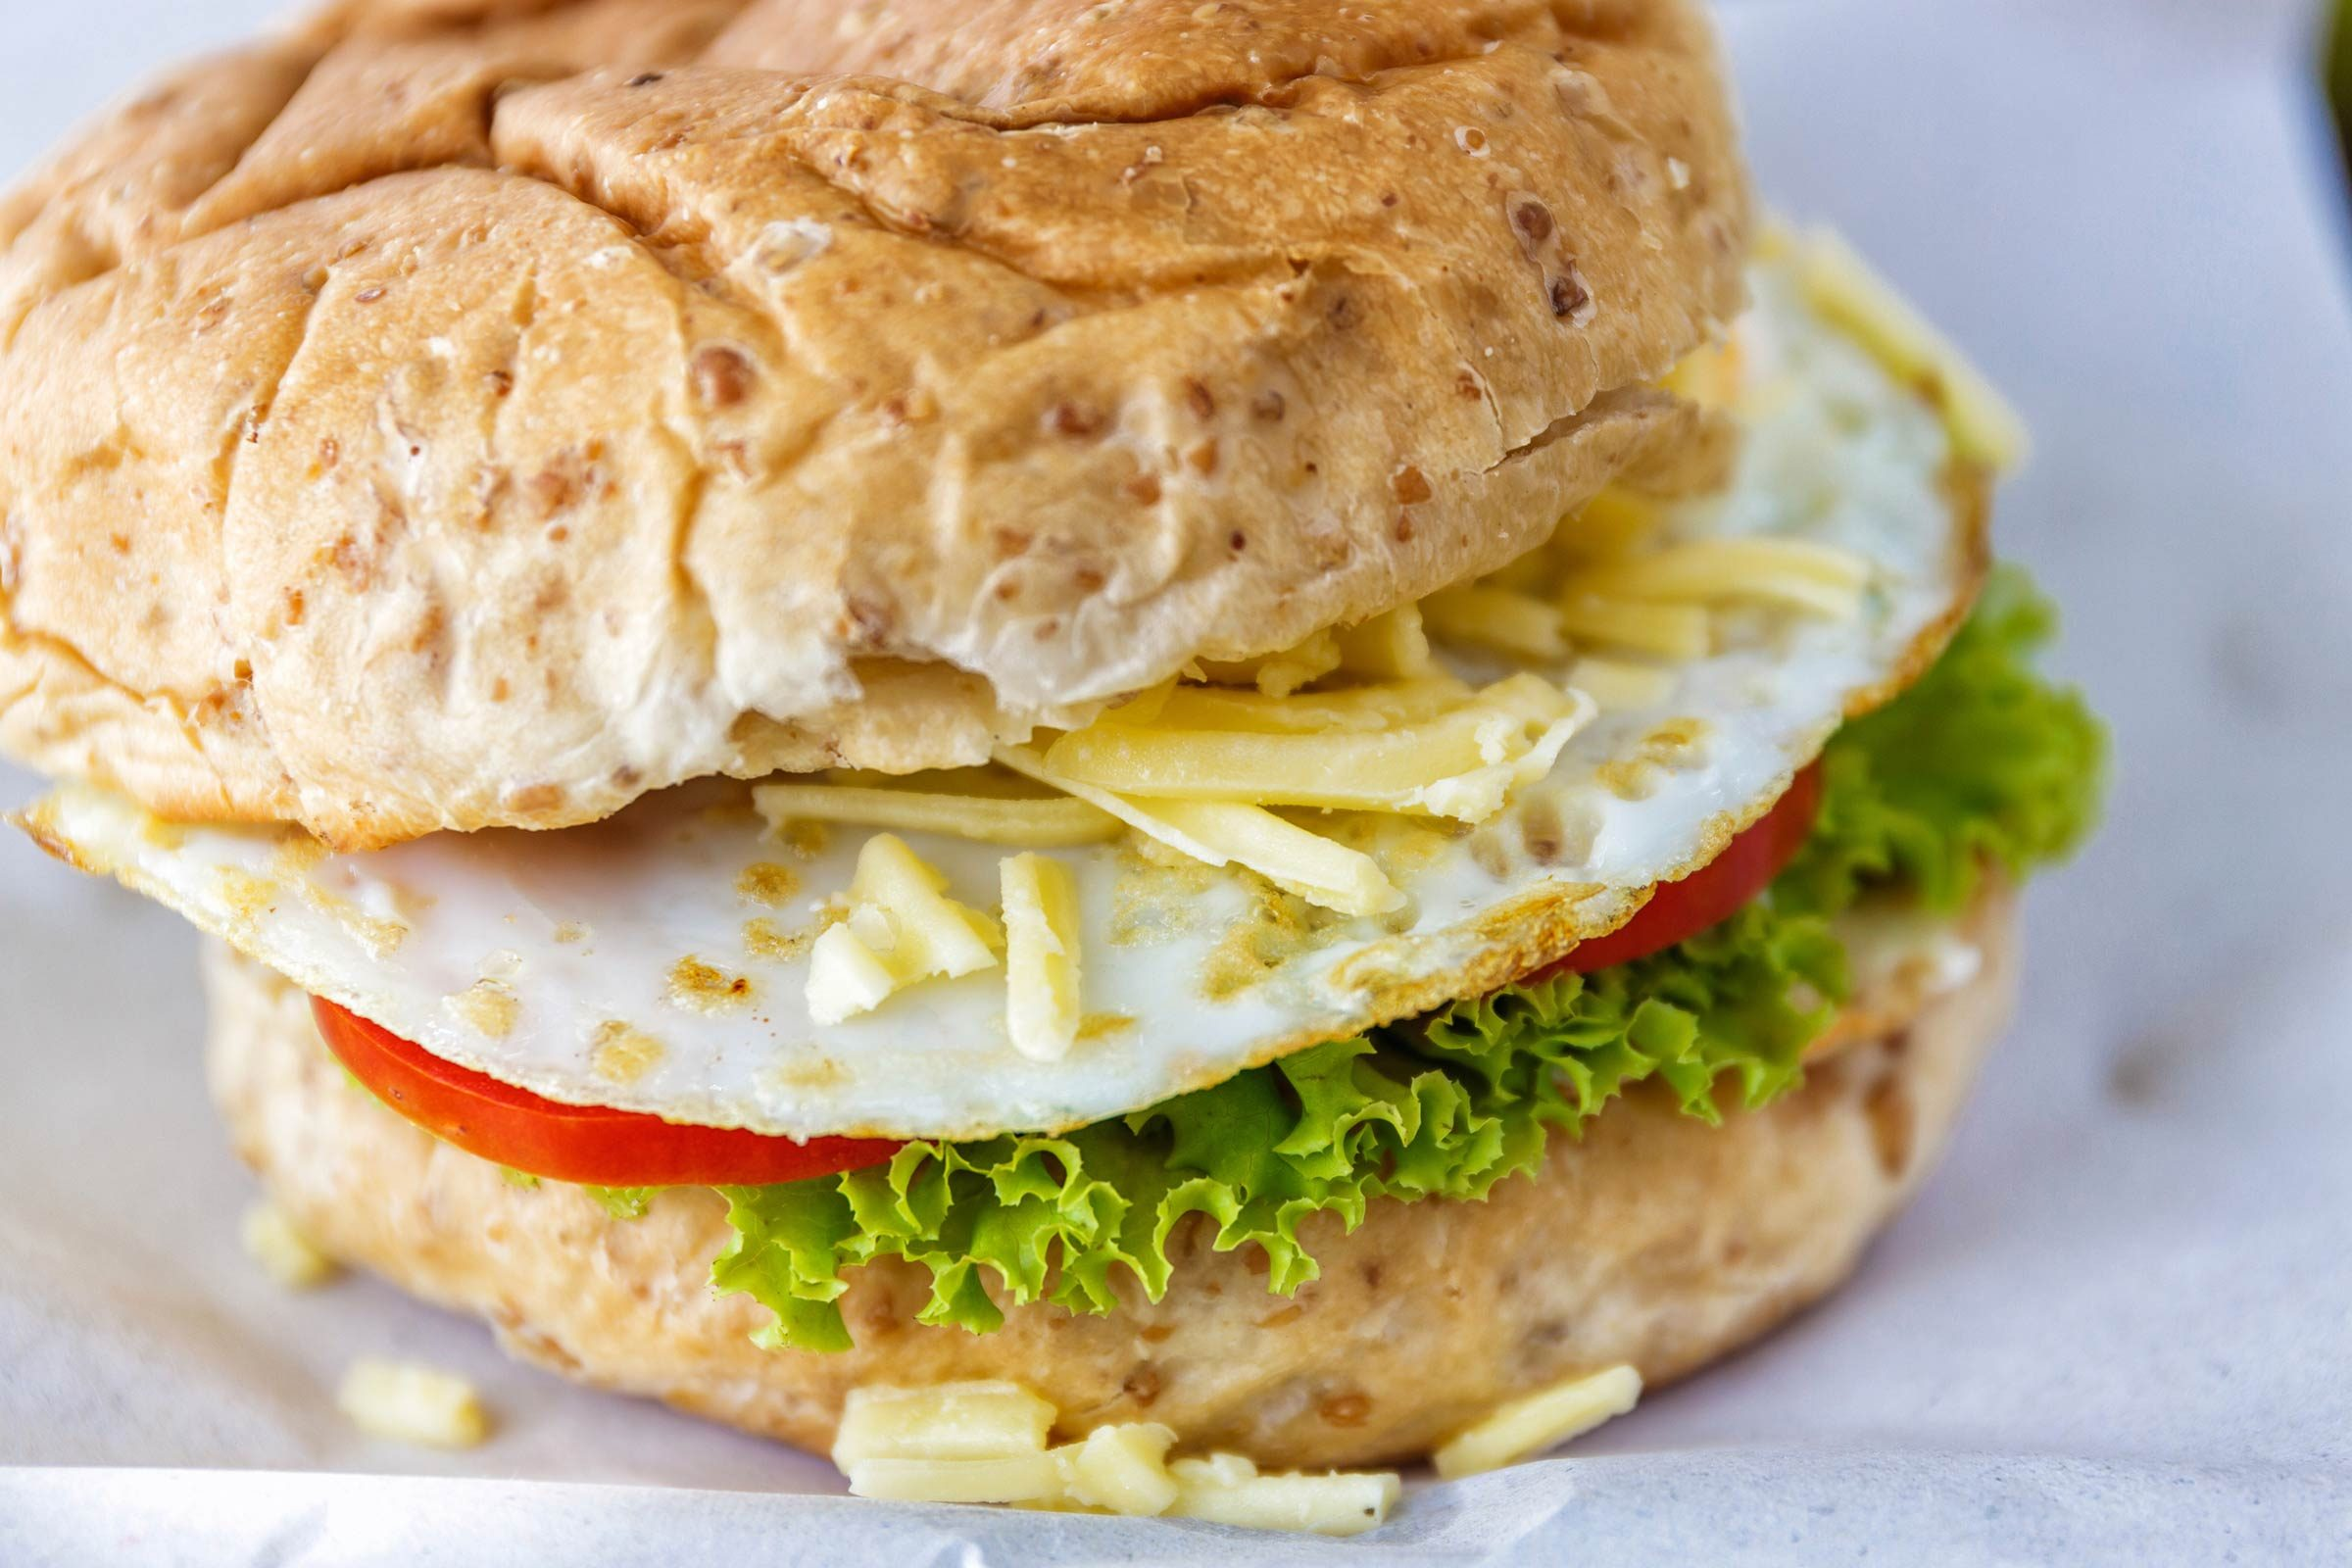 Make a sliced egg and tomato sandwich with pesto mayo